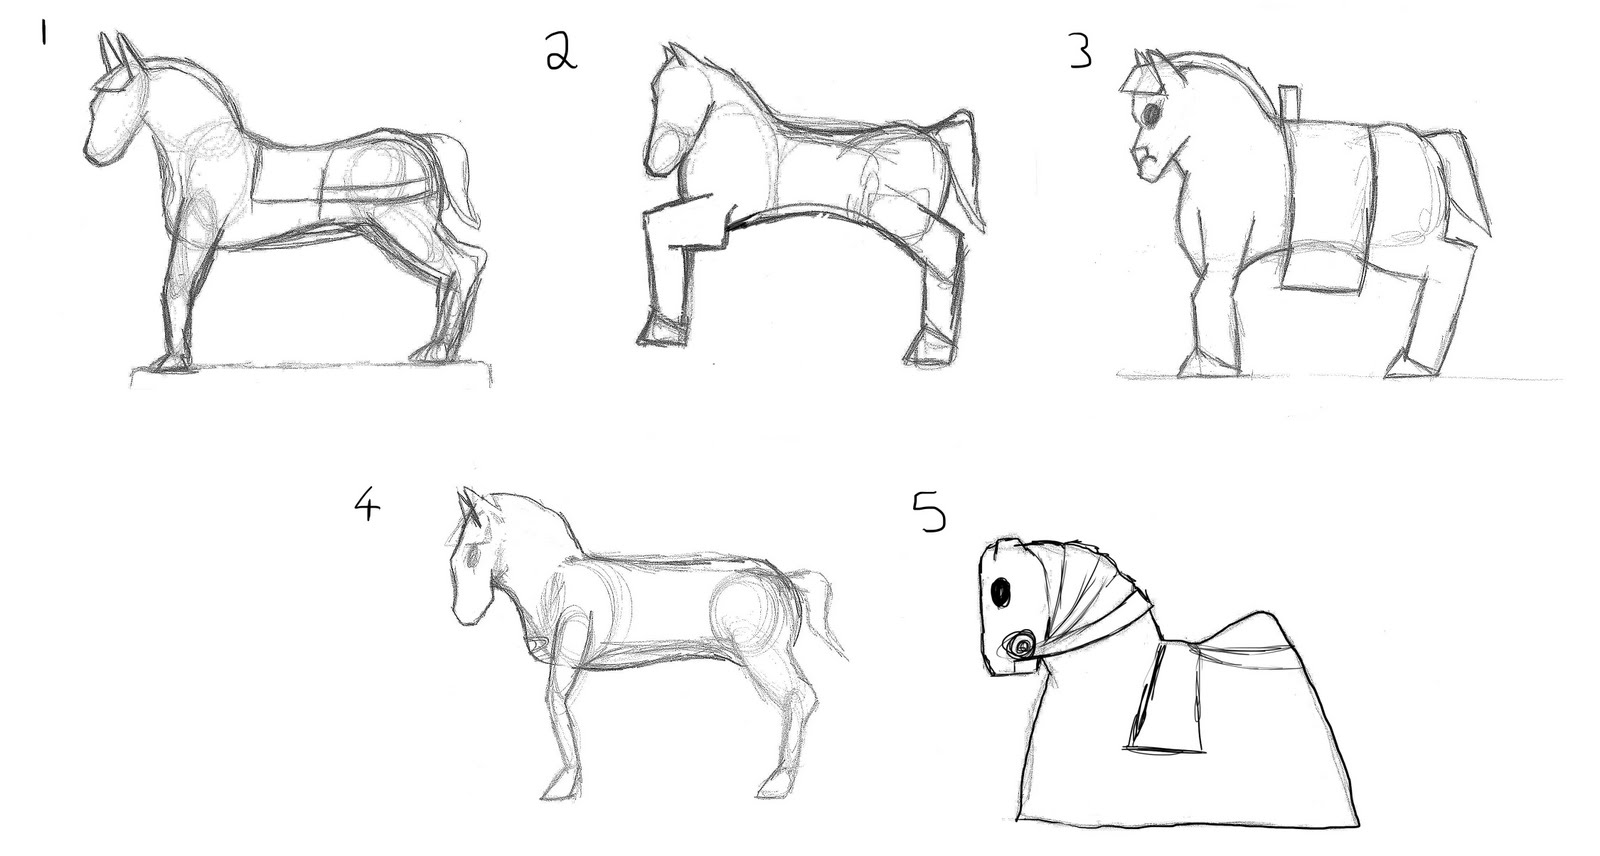 Howtodrawanimals How To Draw Animals Step By Step  Drawingdogs_71_ears_pointed